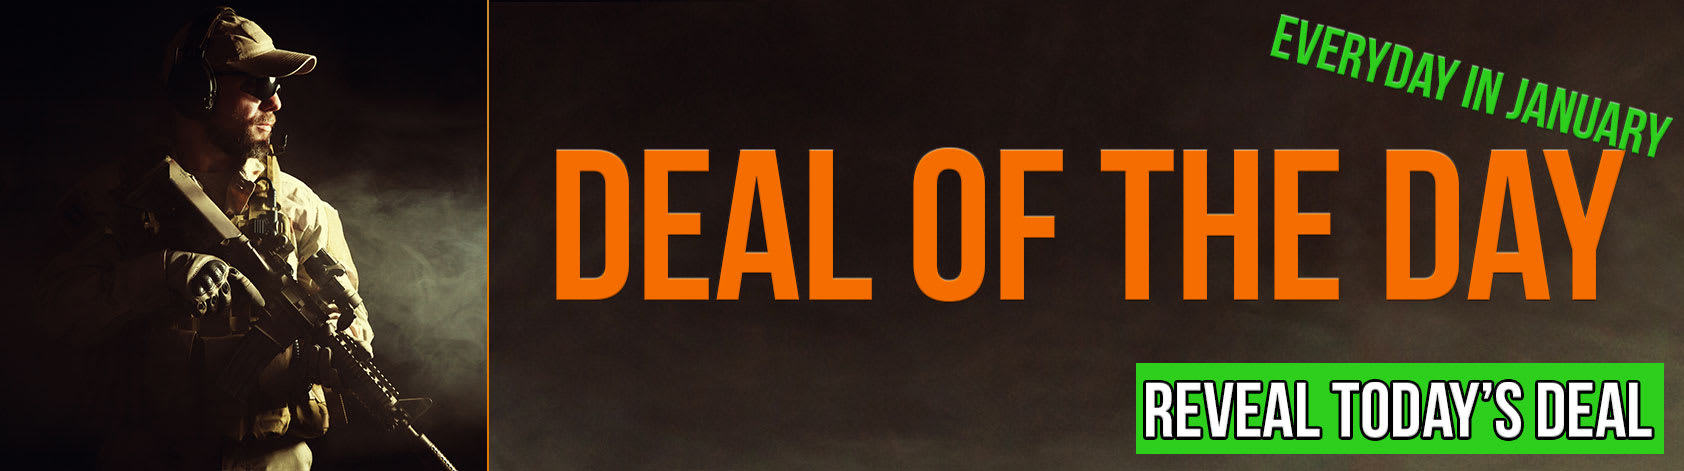 Check out today's daily deal